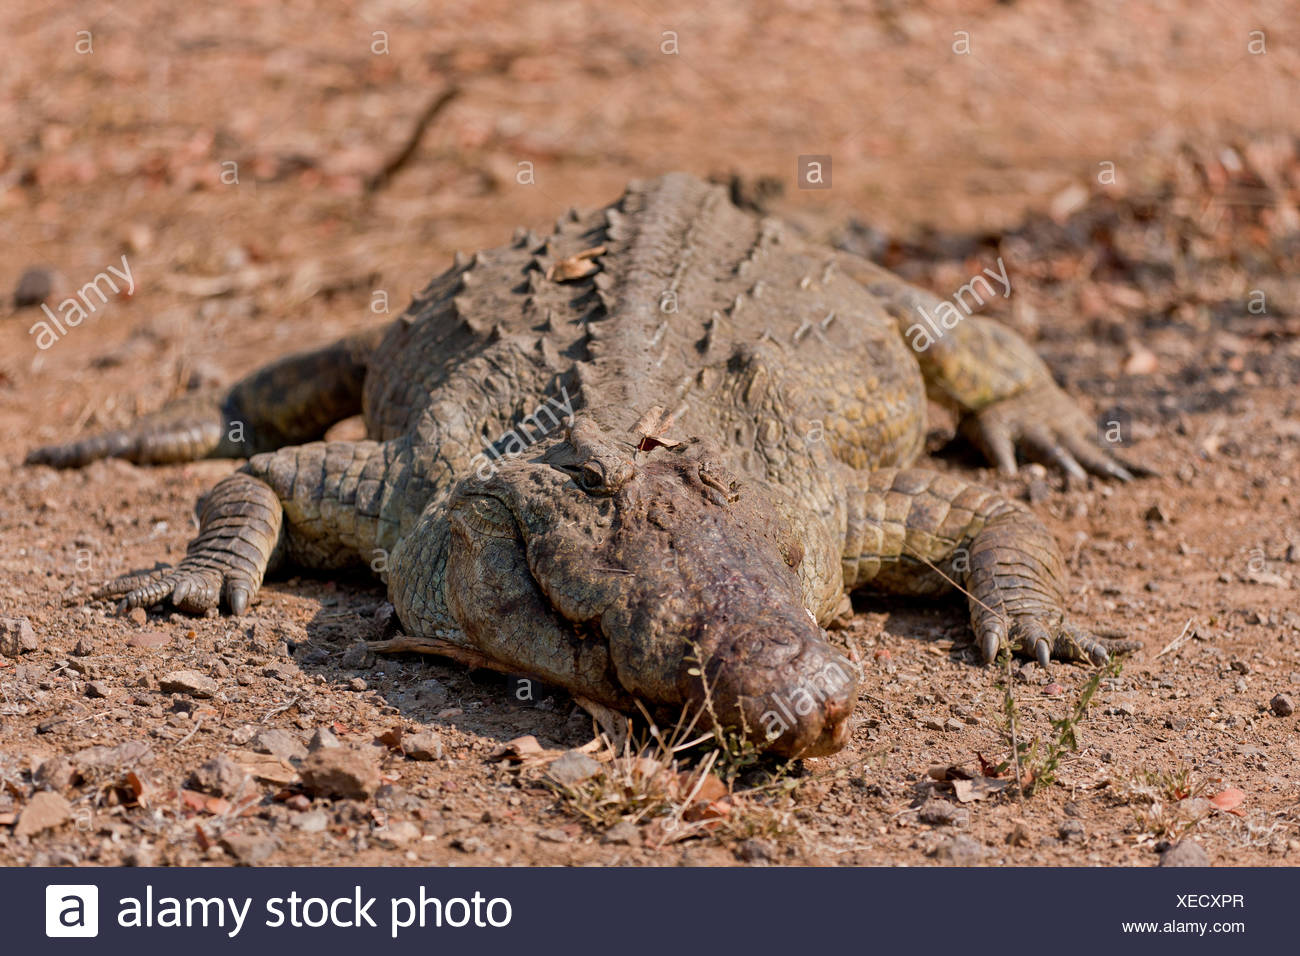 Nile crocodile (Crocodylus niloticus) at a waterhole, Kruger National Park, South Africa - Stock Image